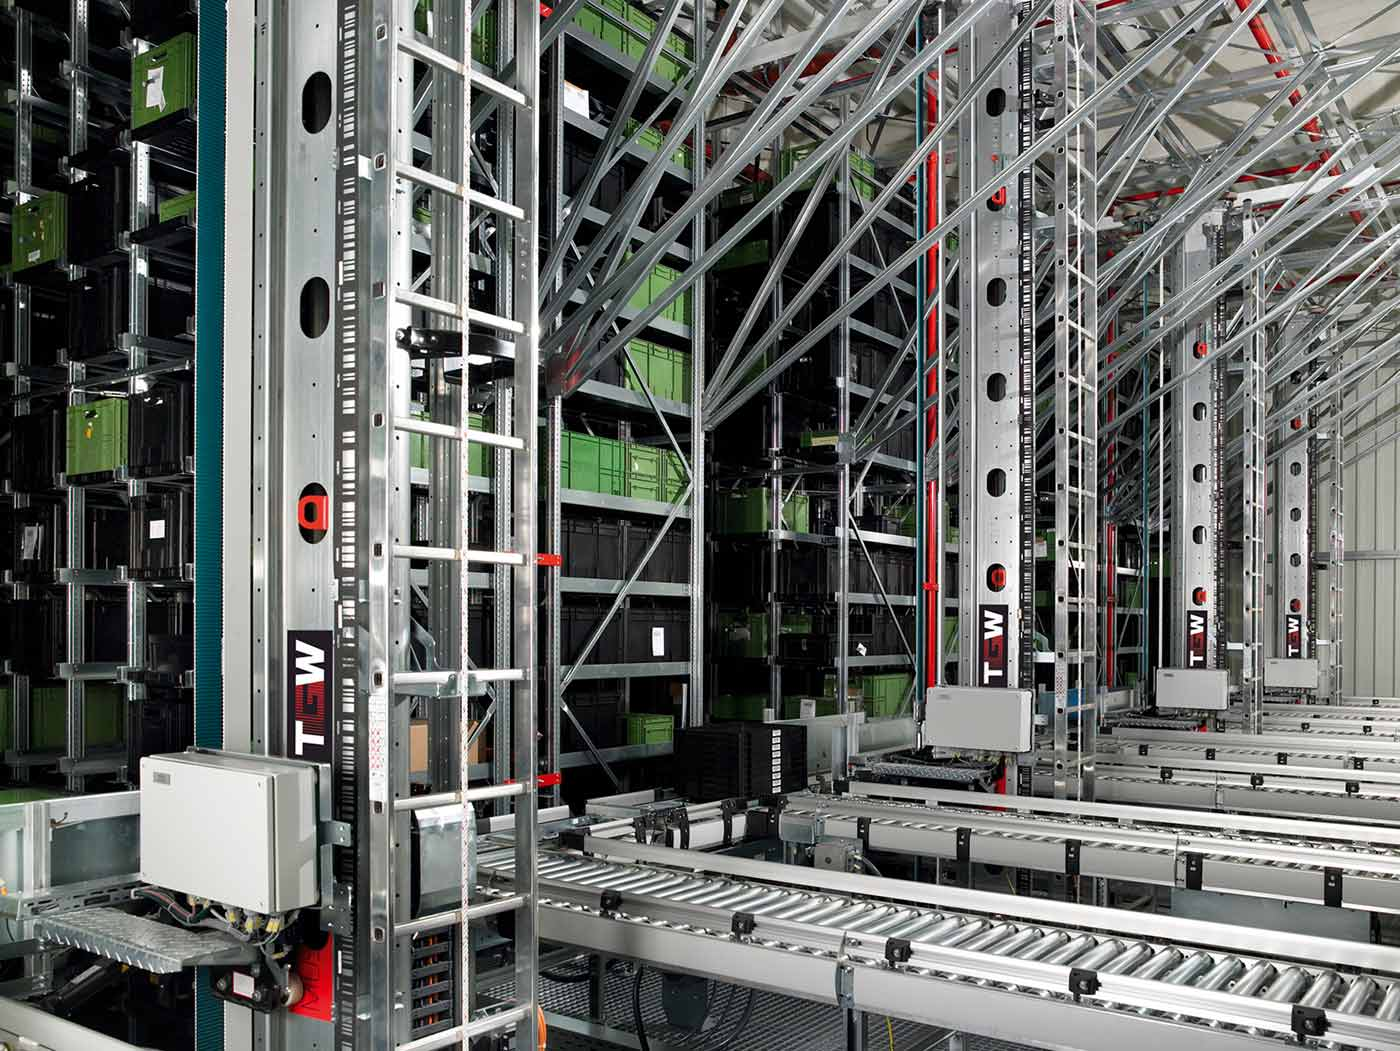 Automated storage and retrieval system.